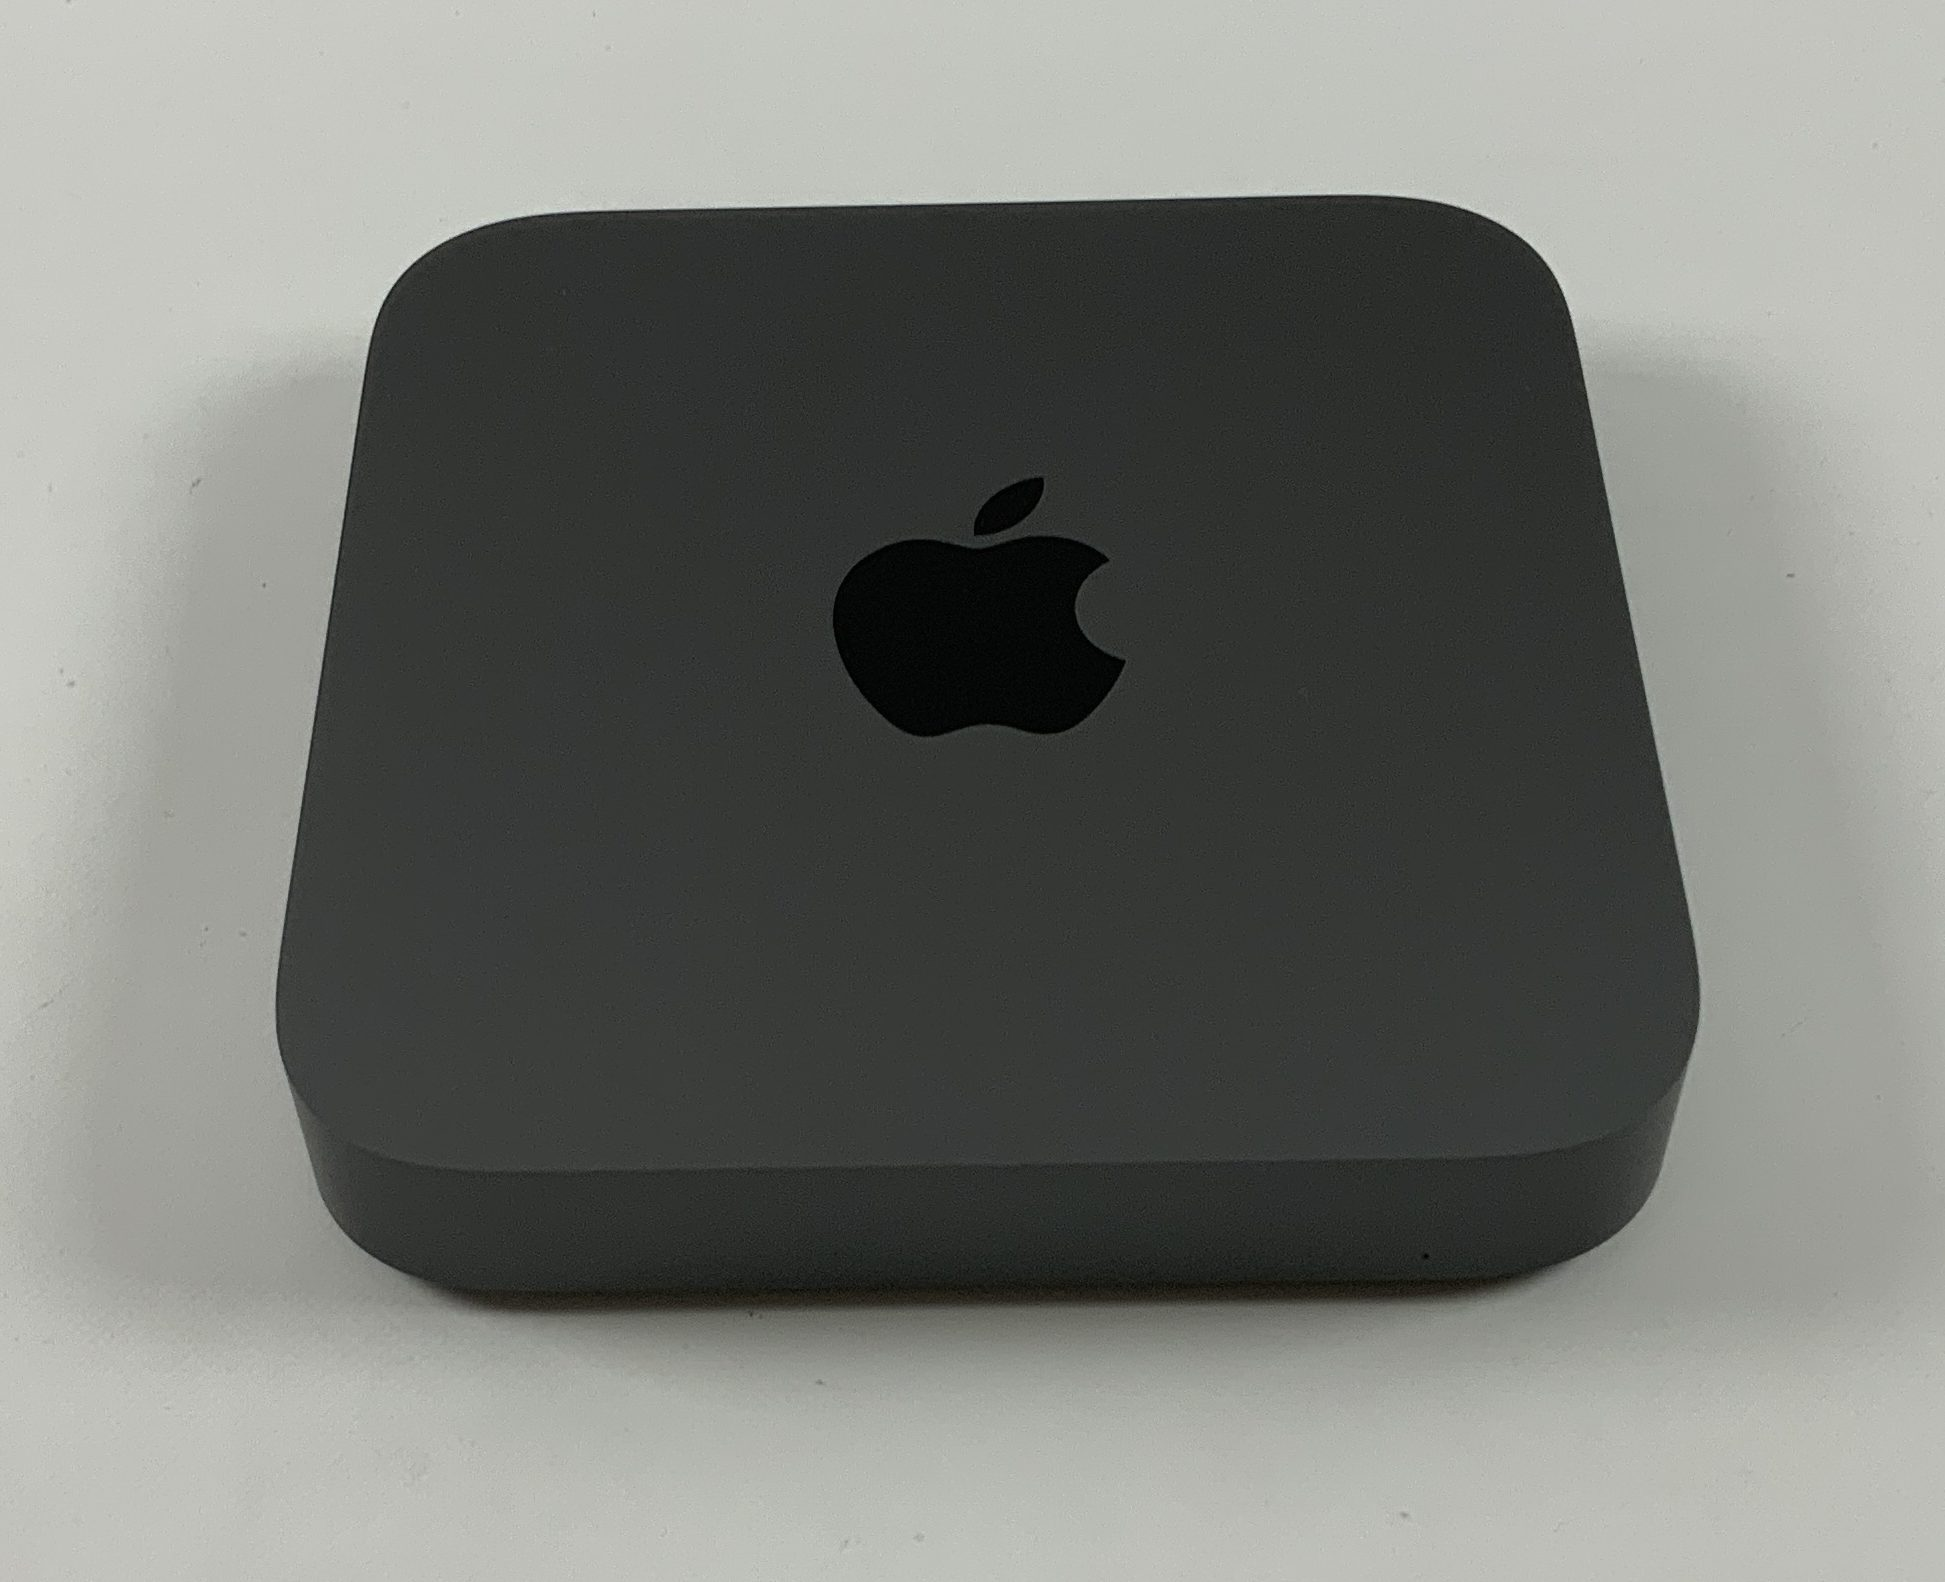 Mac Mini Late 2018 (Intel Quad-Core i3 3.6 GHz 8 GB RAM 256 GB SSD), Intel Quad-Core i3 3.6 GHz, 8 GB RAM, 256 GB SSD, image 1